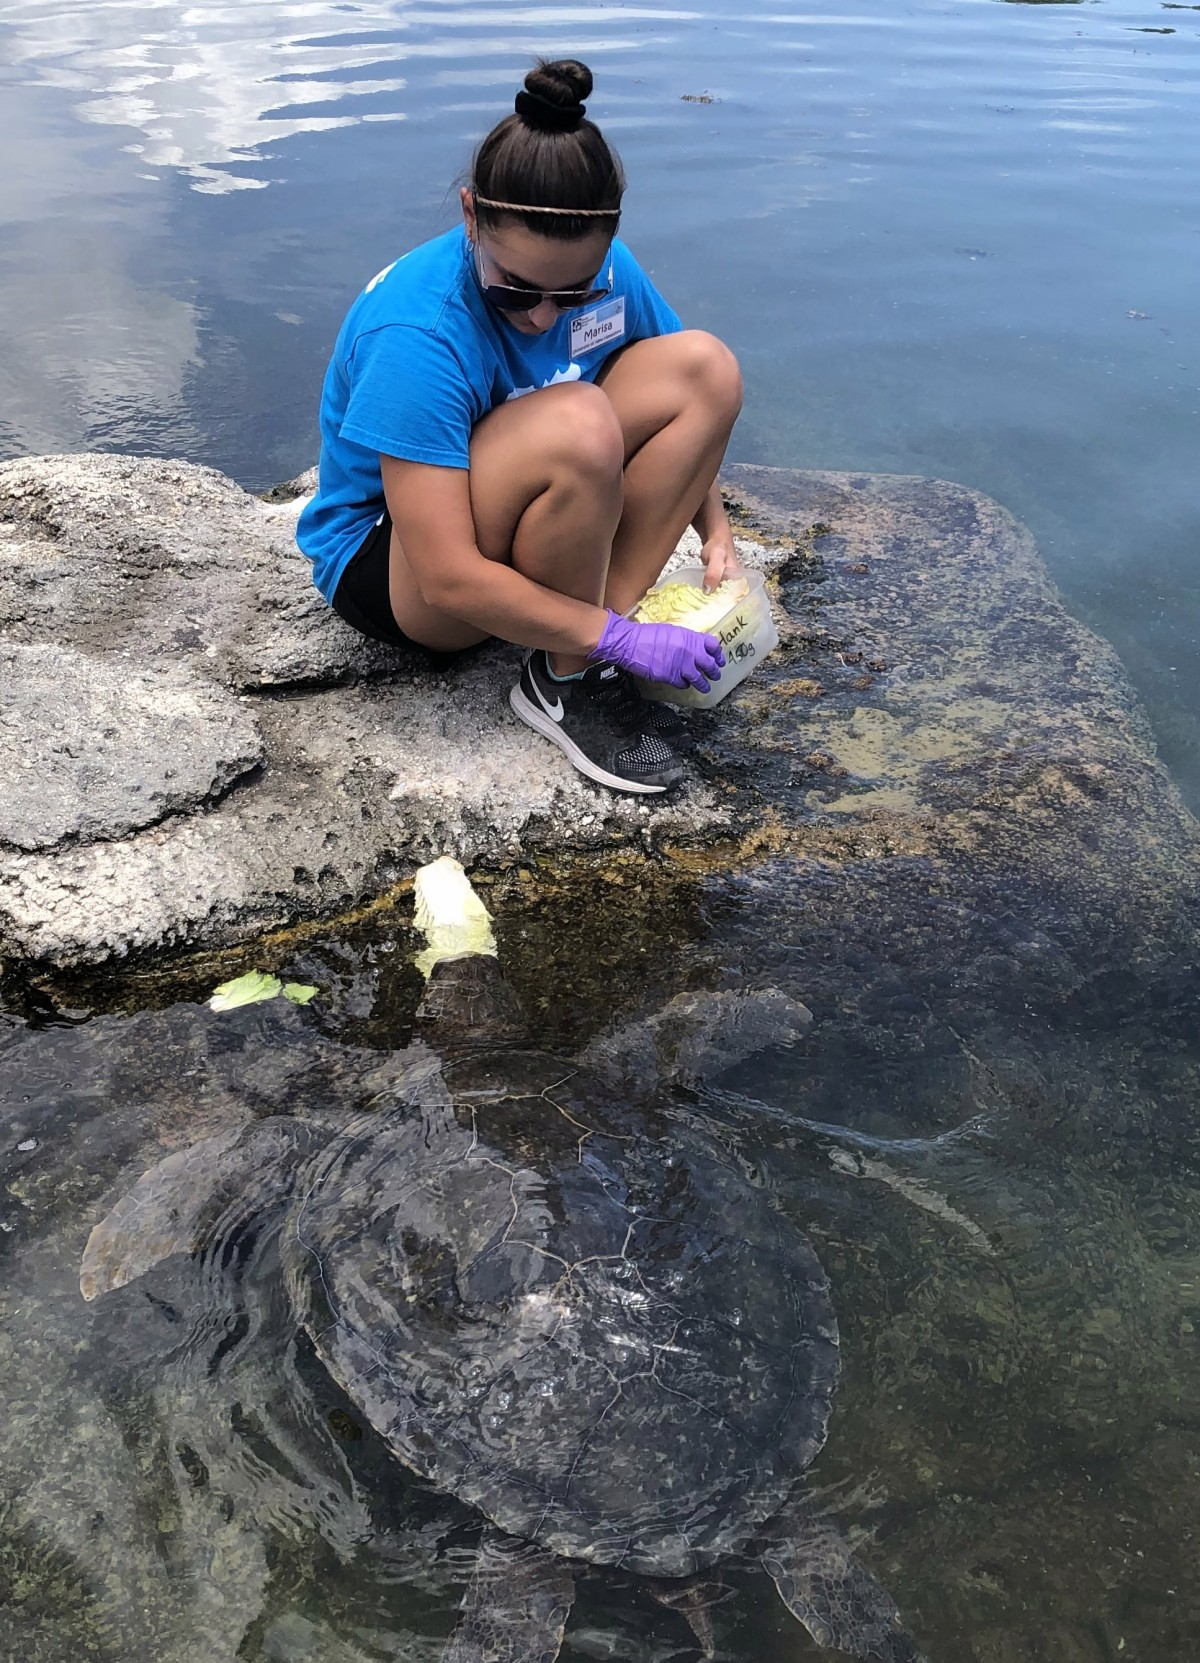 UNH student Marisa Gazzola interacts with a sea turtle during her summer internship in Florida